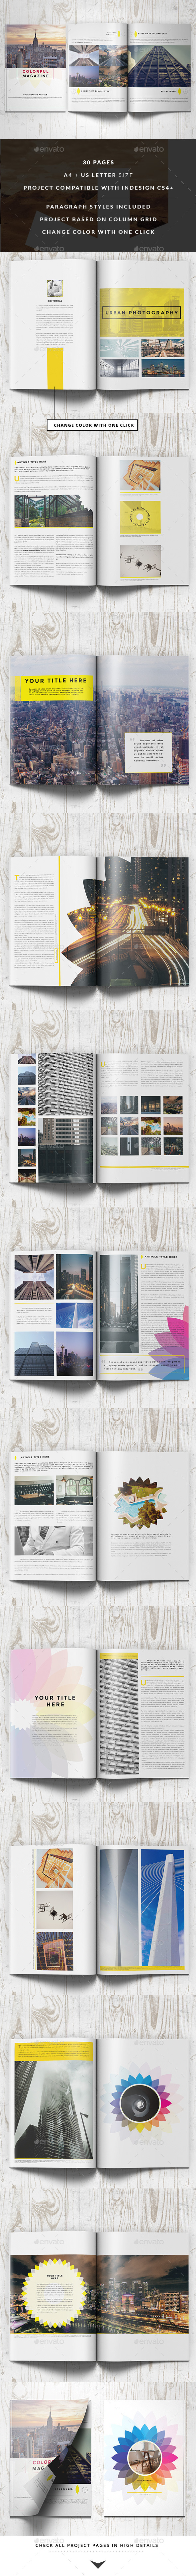 Clean Colorful Magazine - Magazines Print Templates